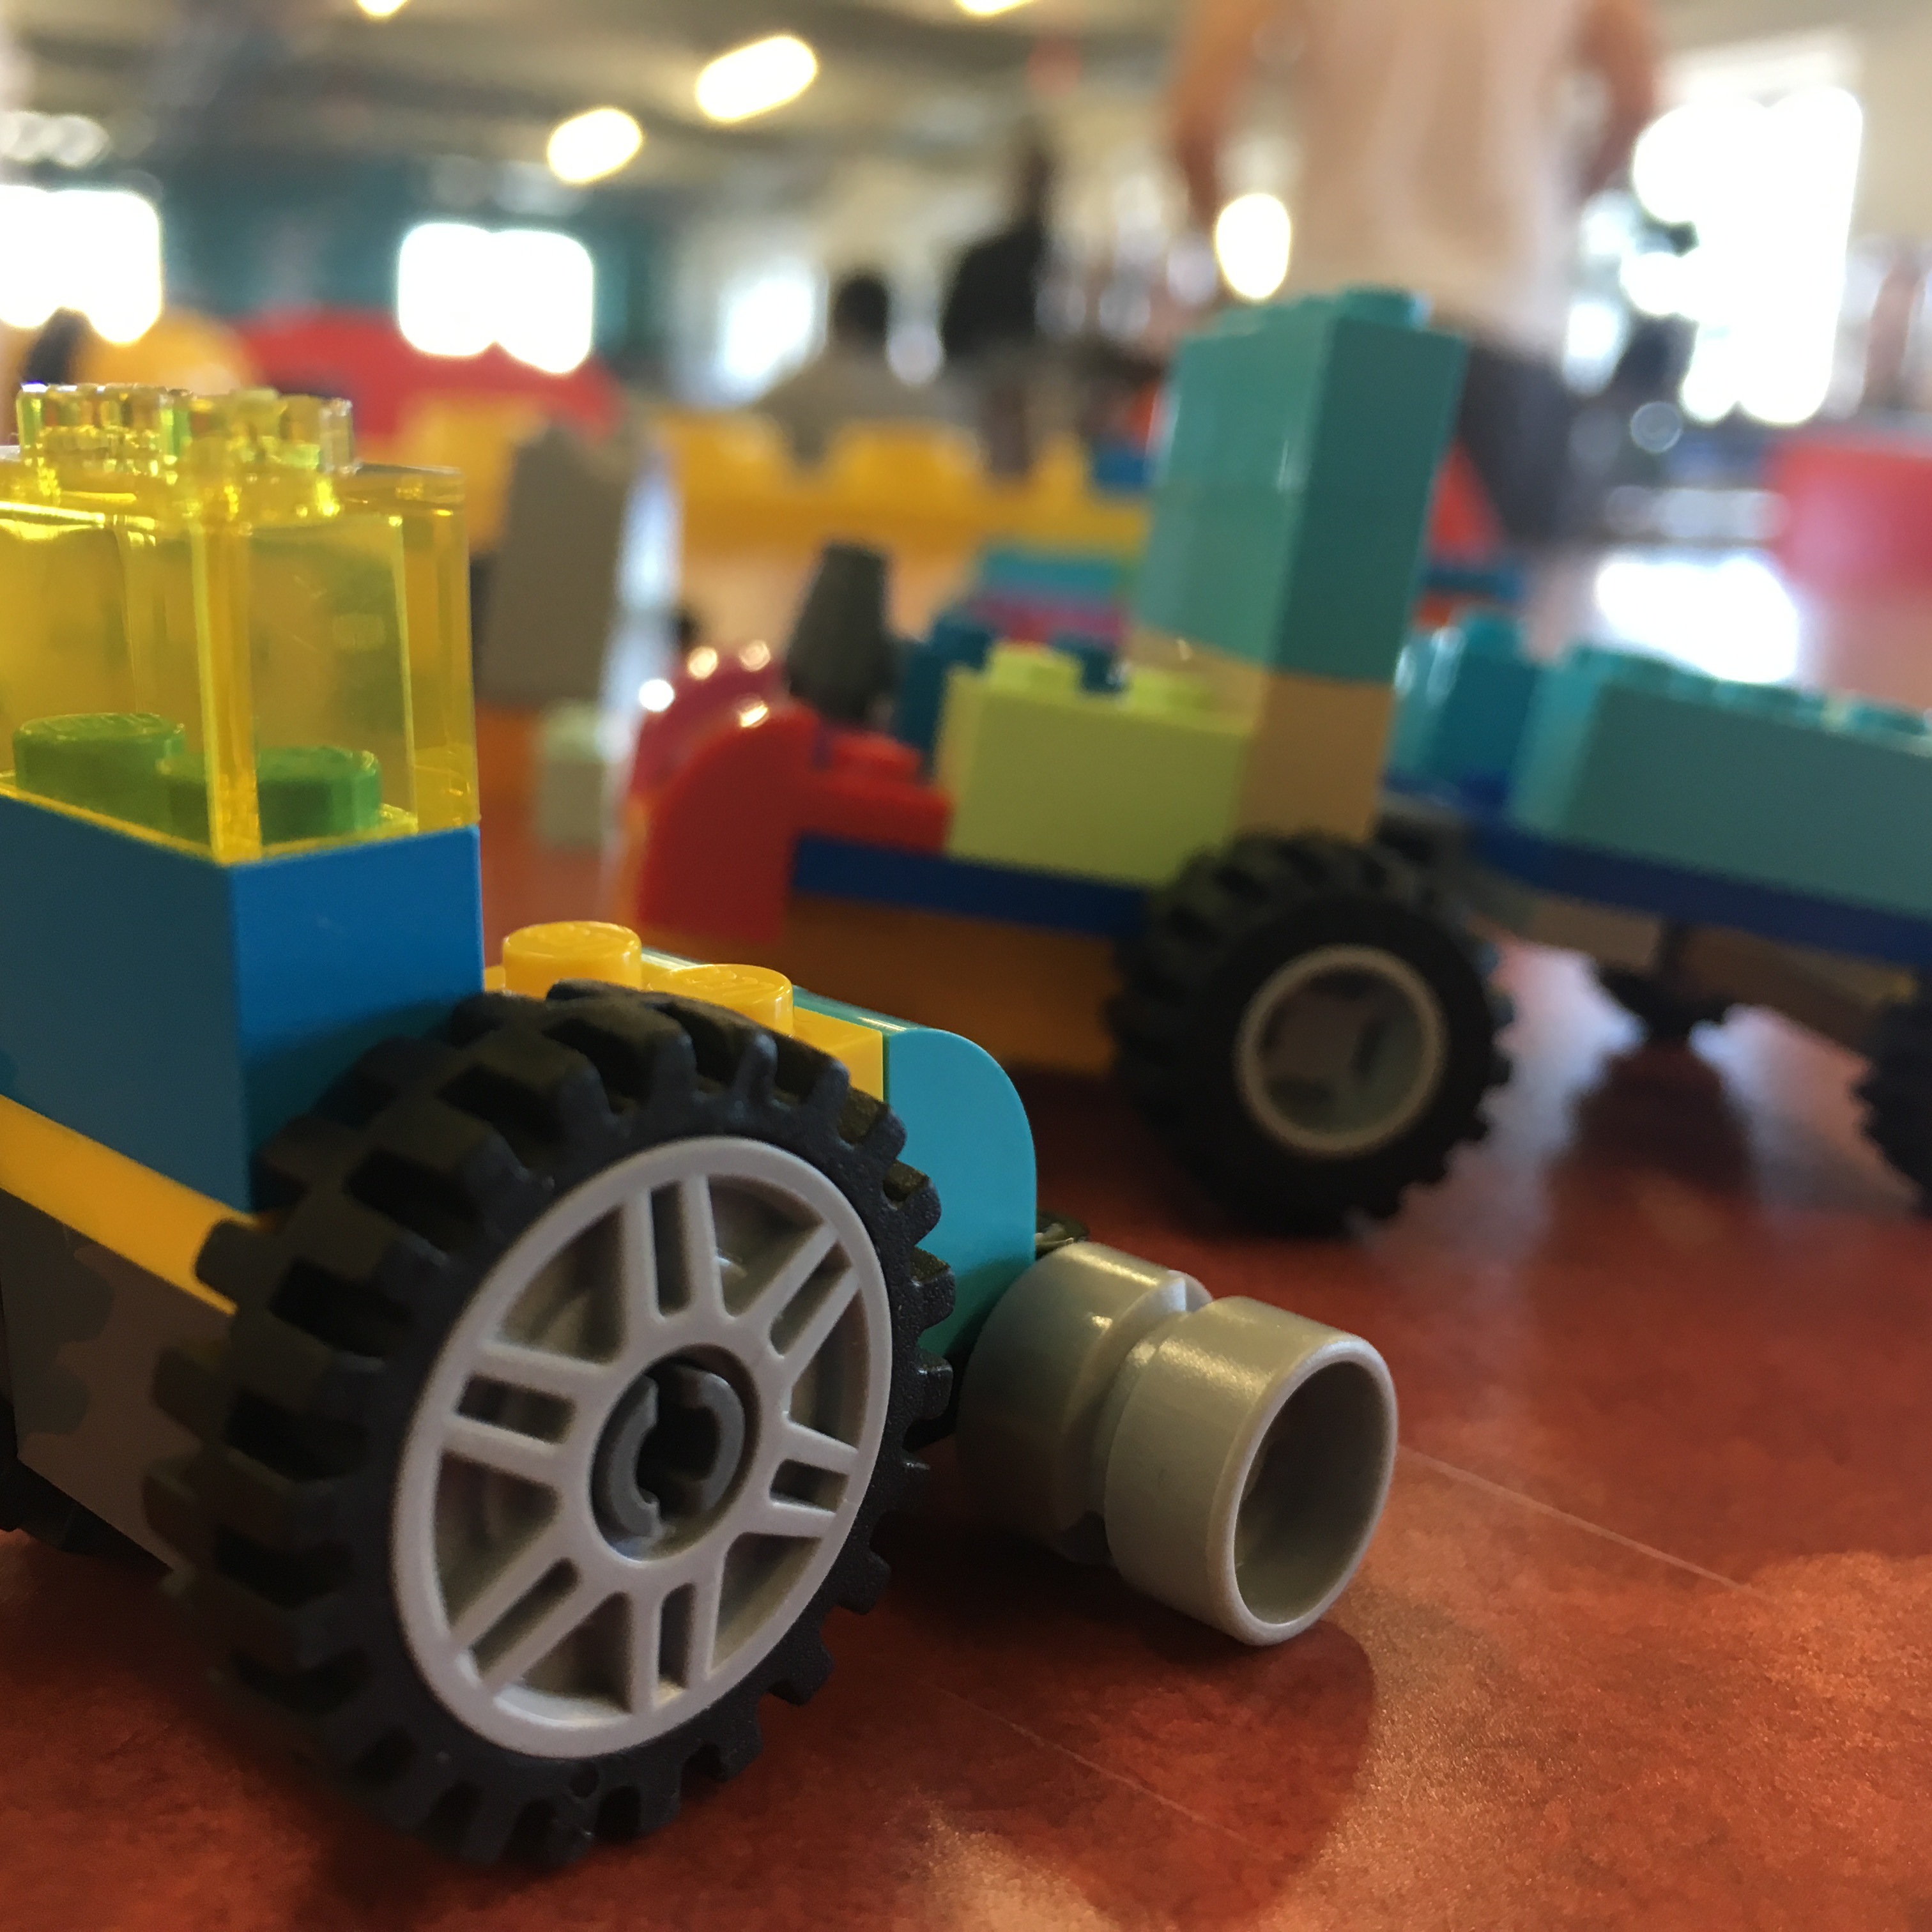 Photograph of Lego Wheelchair made by Touretteshero. It is made using colourful translucent green, baby blue, yellow and blue blocks with big jumbo wheels and wide castor wheels. Other lego wheelchairs are visible in the background.